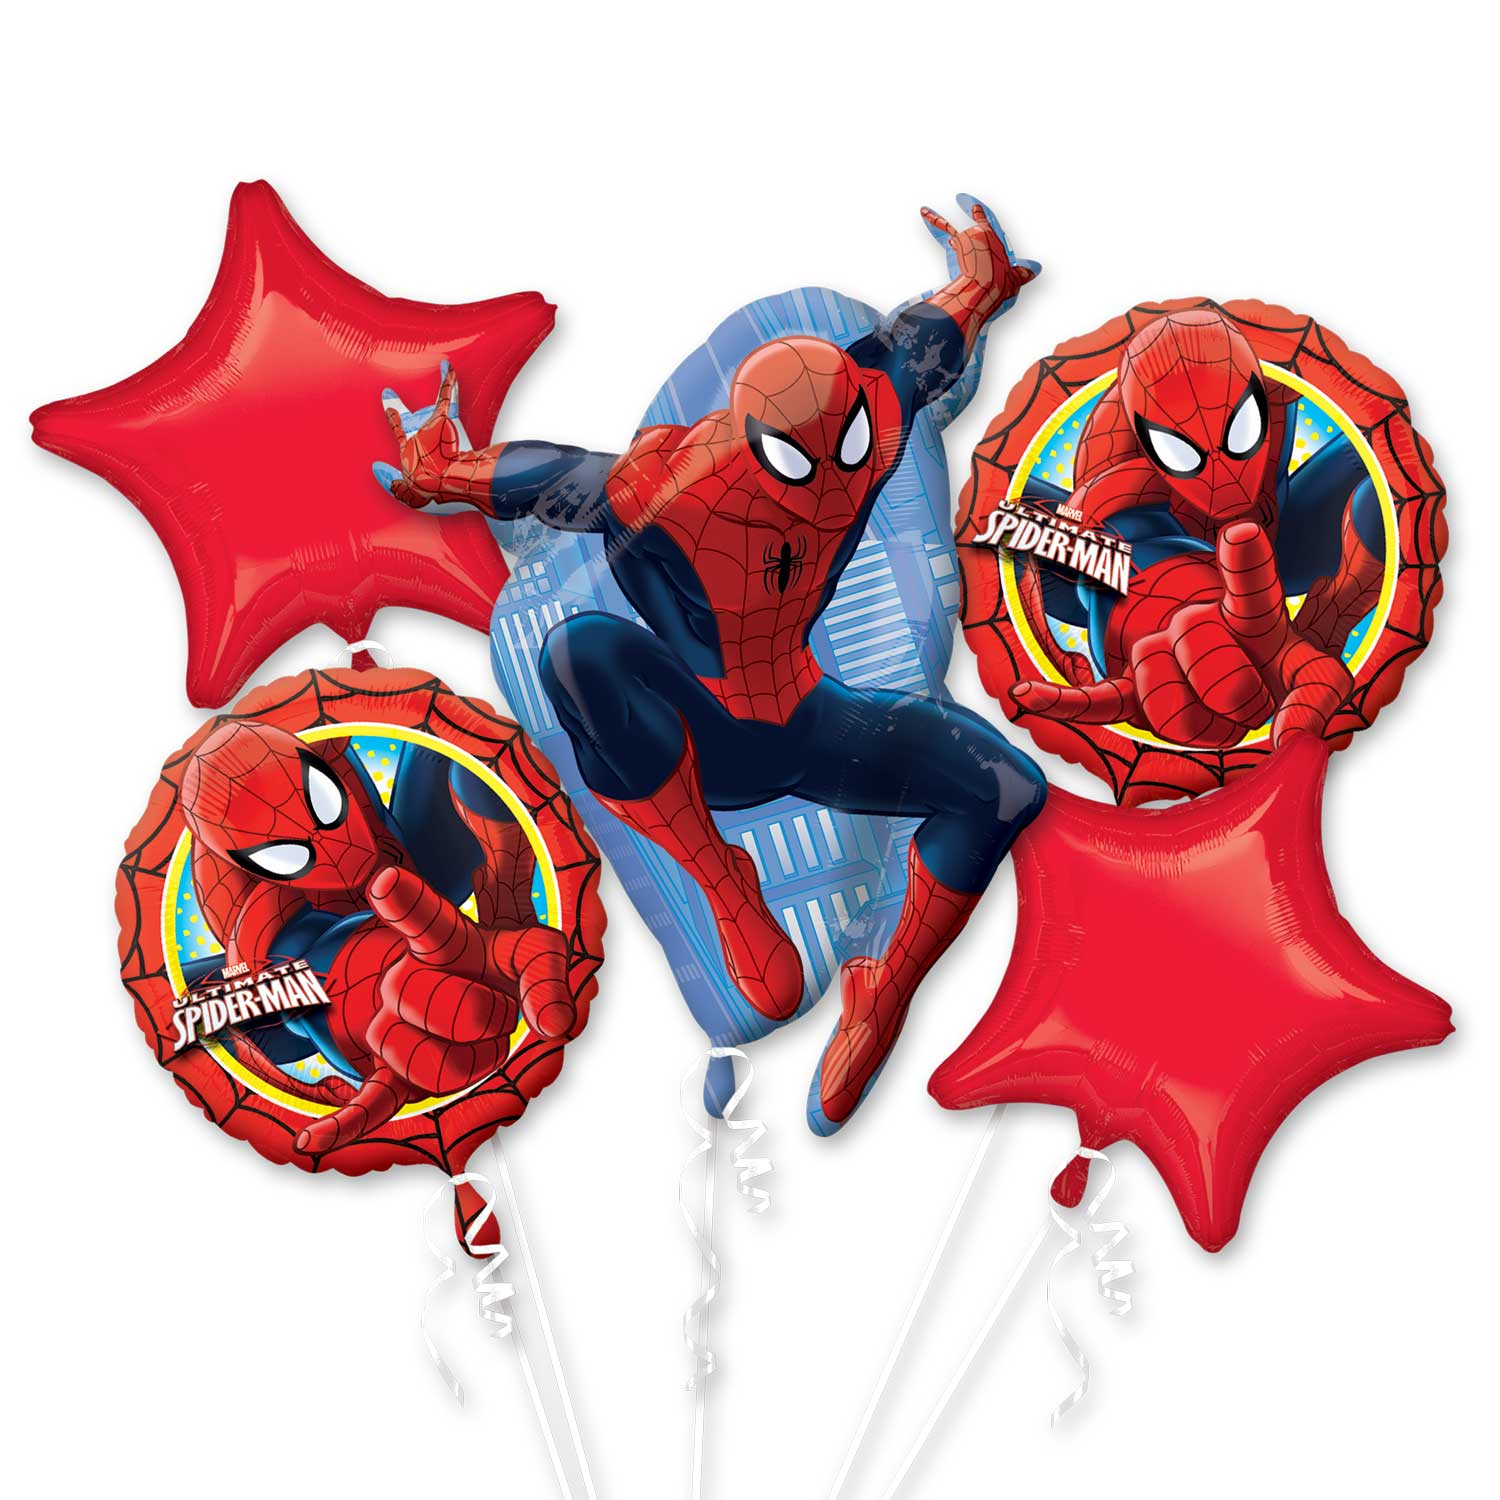 Marvels Spider Man Ultimate Birthday Balloons